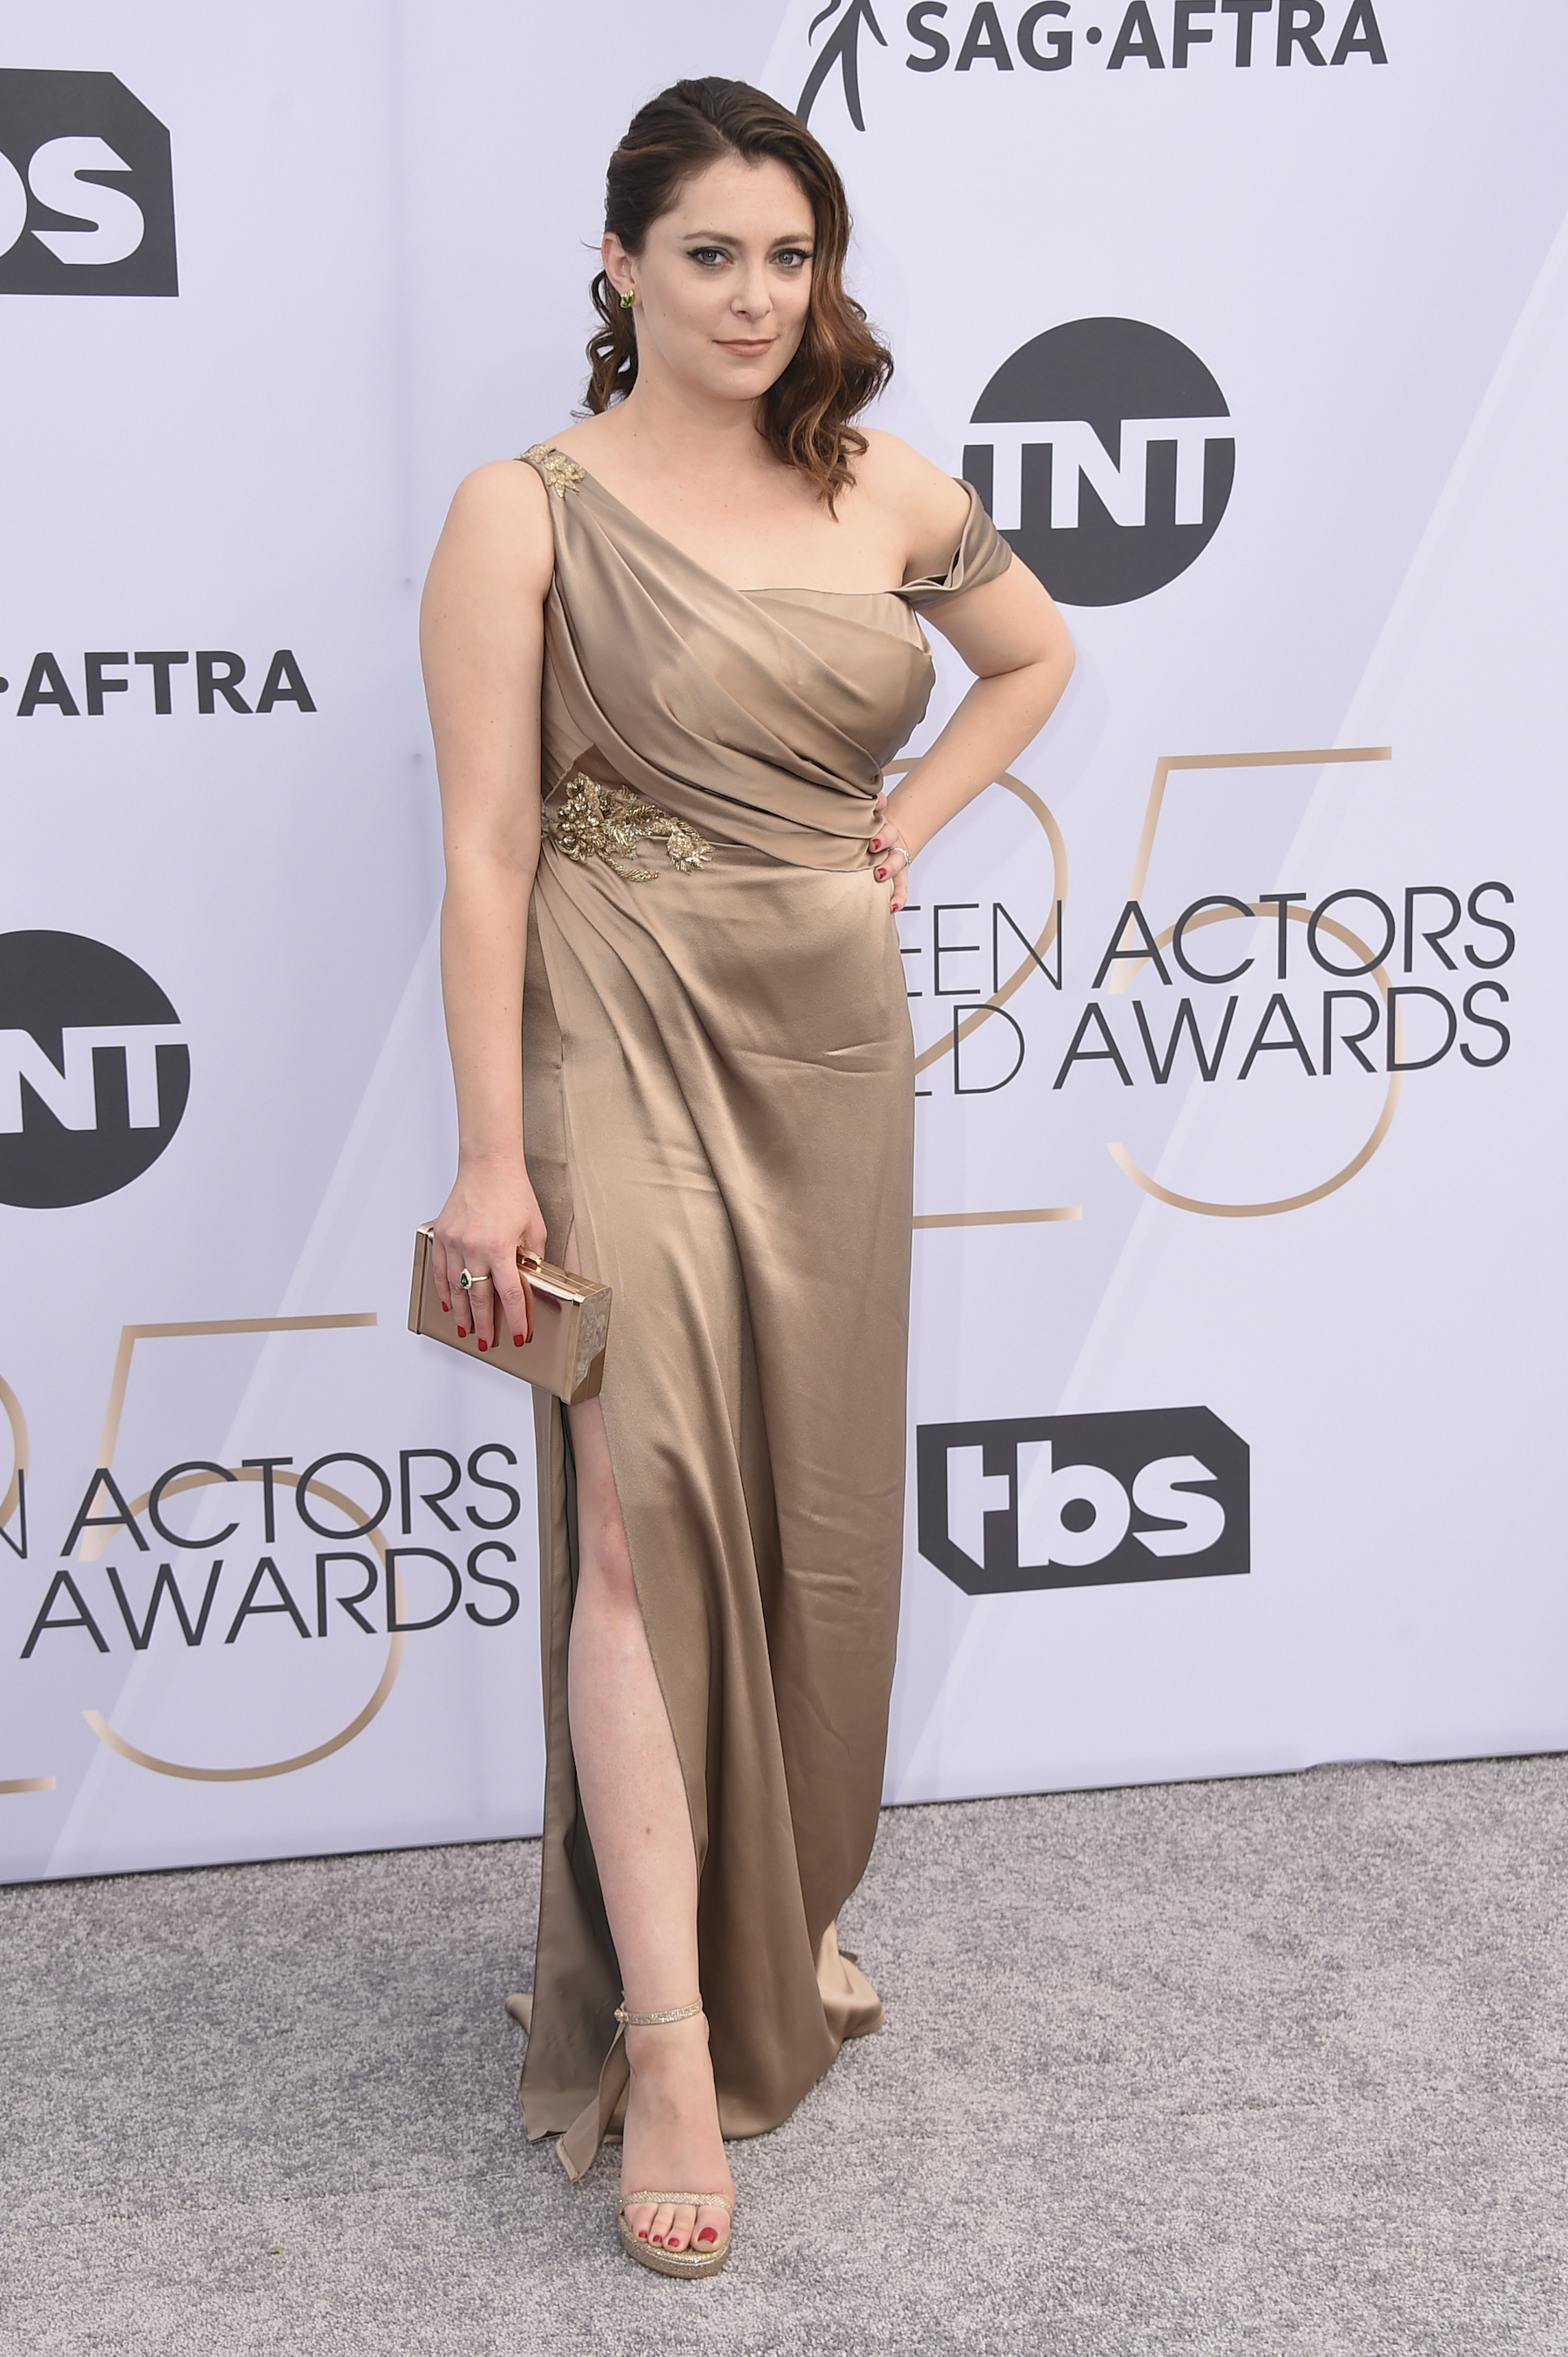 <div class='meta'><div class='origin-logo' data-origin='AP'></div><span class='caption-text' data-credit='Jordan Strauss/Invision/AP'>Rachel Bloom arrives at the 25th annual Screen Actors Guild Awards at the Shrine Auditorium & Expo Hall on Sunday, Jan. 27, 2019, in Los Angeles.</span></div>